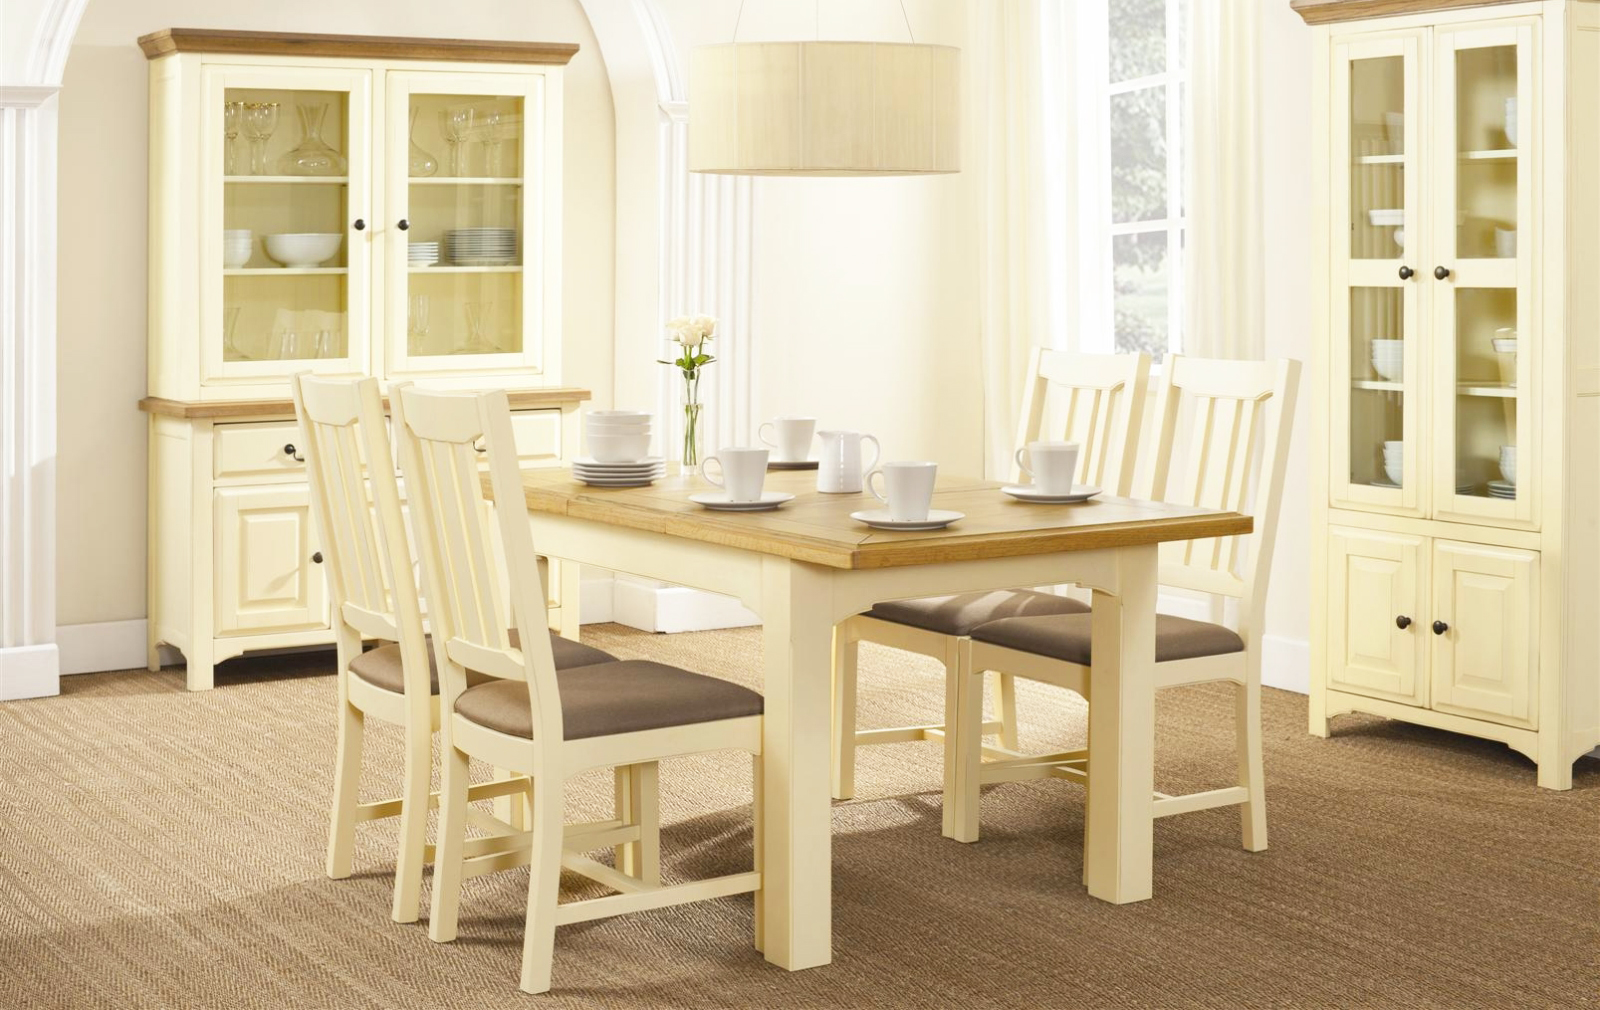 white-oak-furniture-for-dining-table-furniture-in-interior-design-decorations-ideas